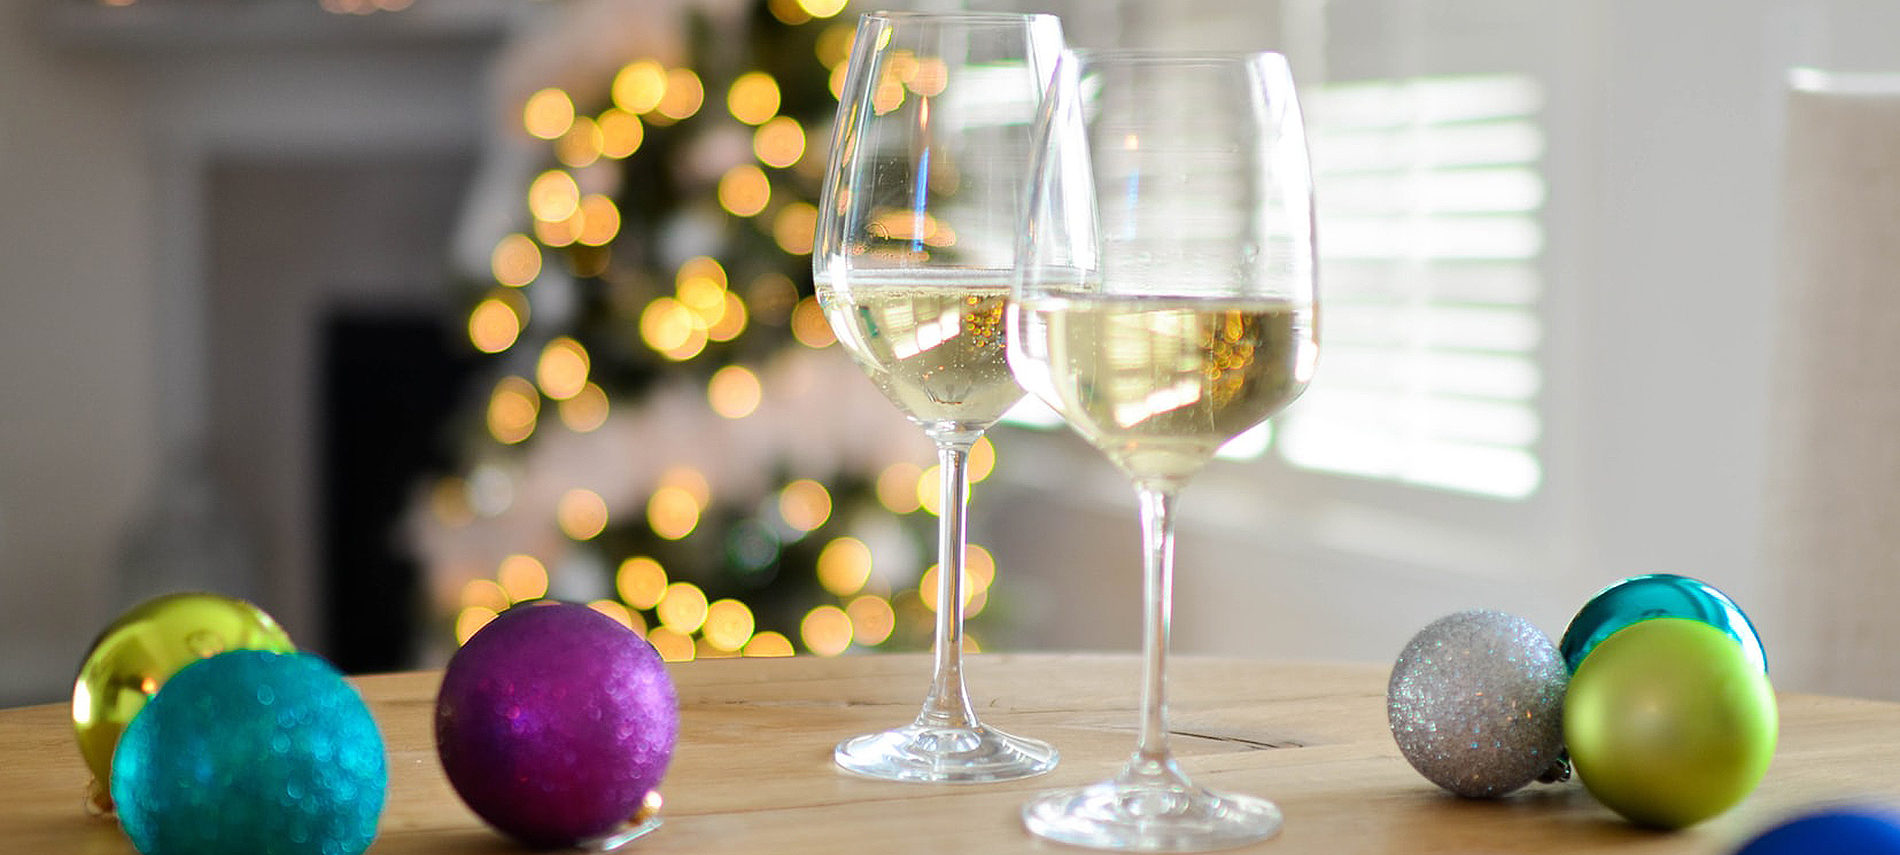 purple blue green christmas balls on table with two glasses of white wine christmas tree with white lights out of focus in background